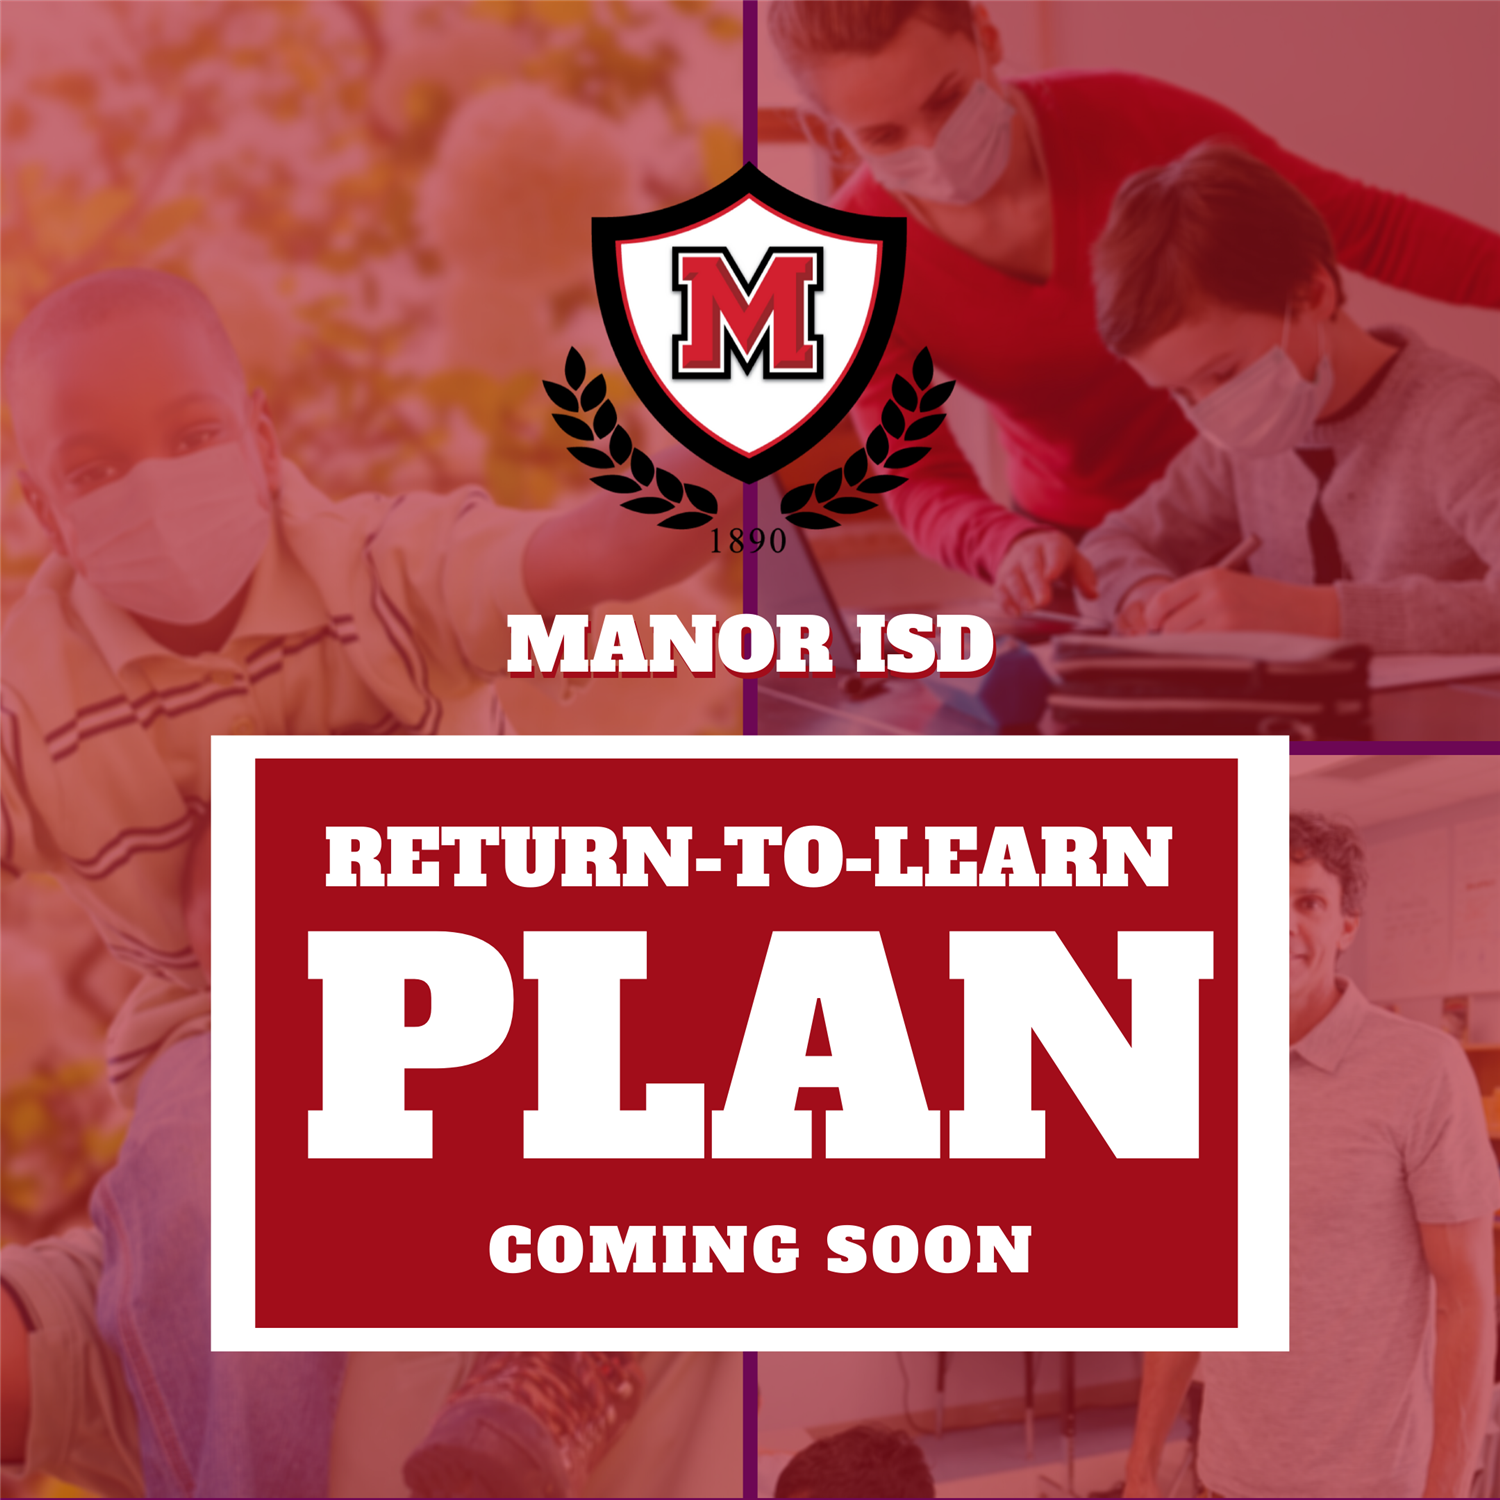 MISD Return to learn plan coming soon square.png